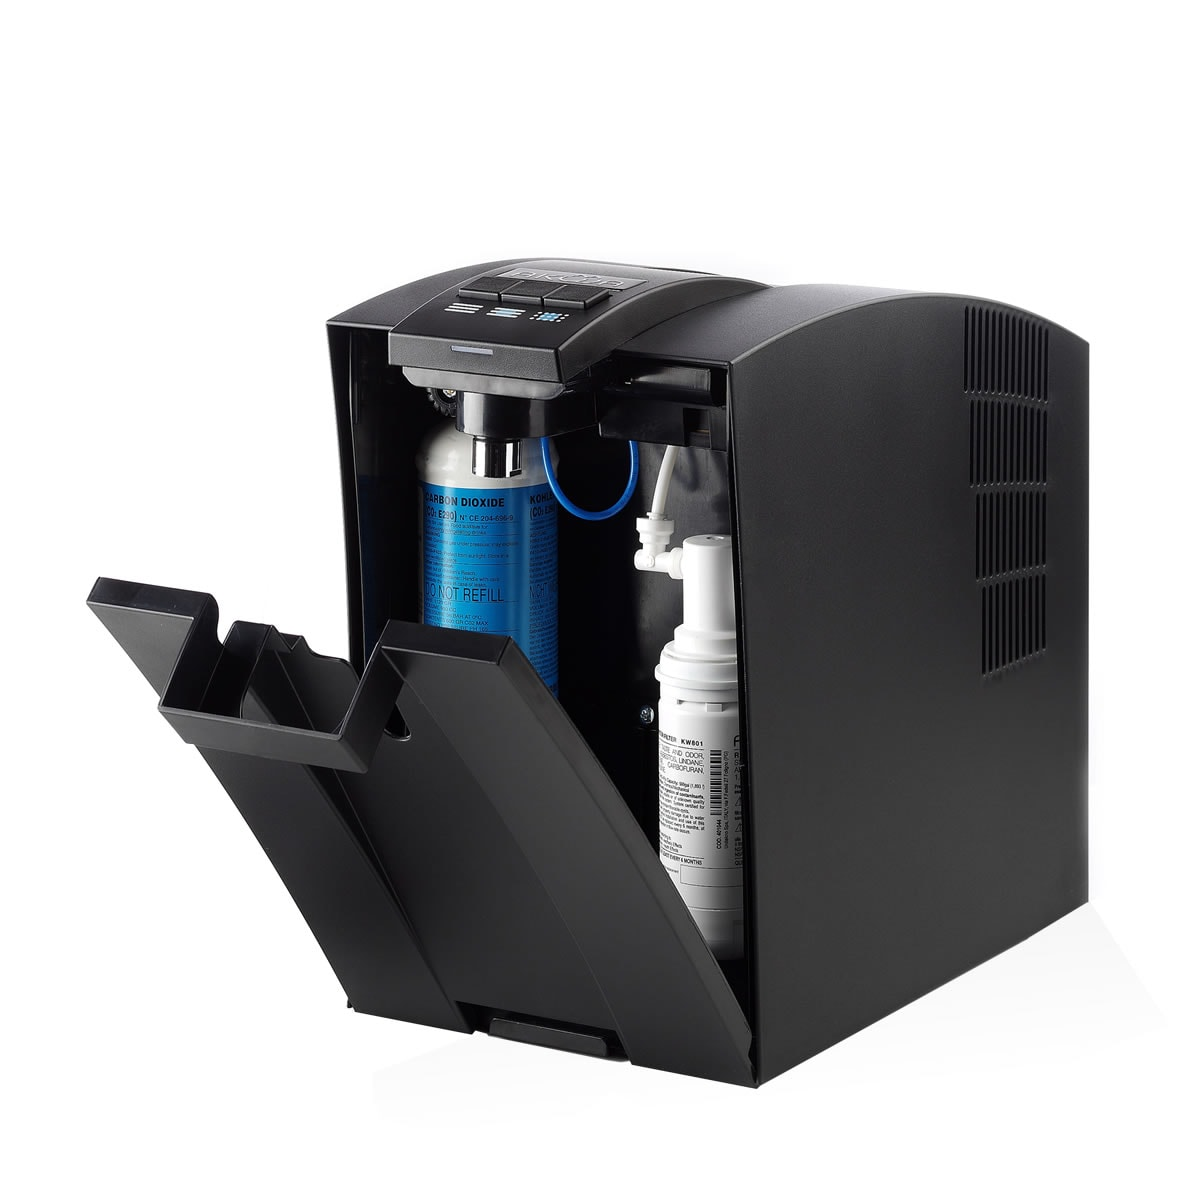 Water purifier dispenser